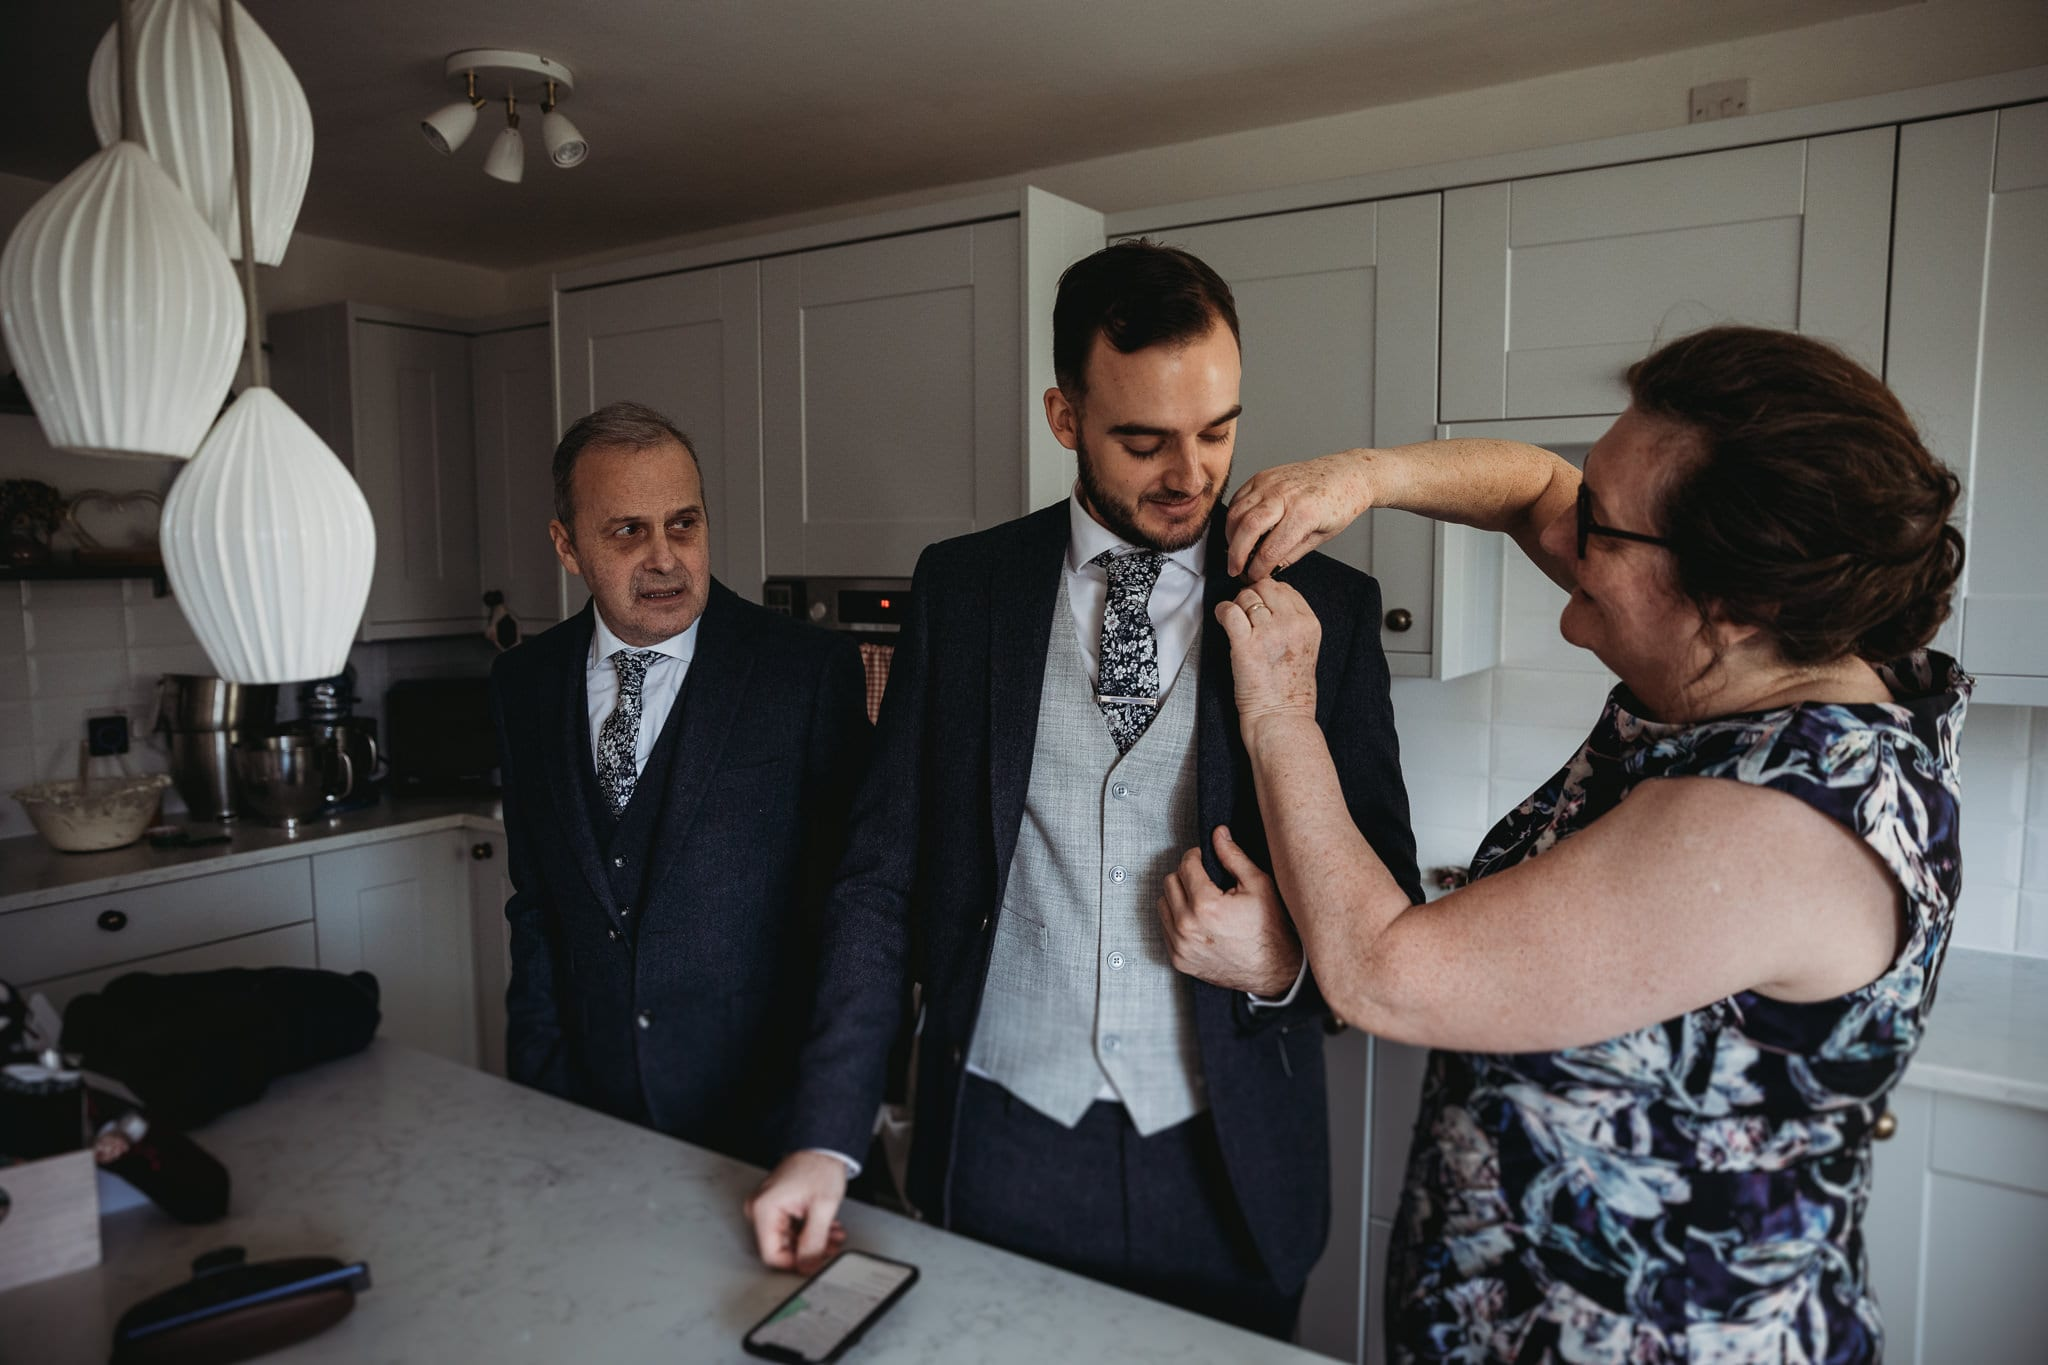 woman putting buttoniere on man's suit